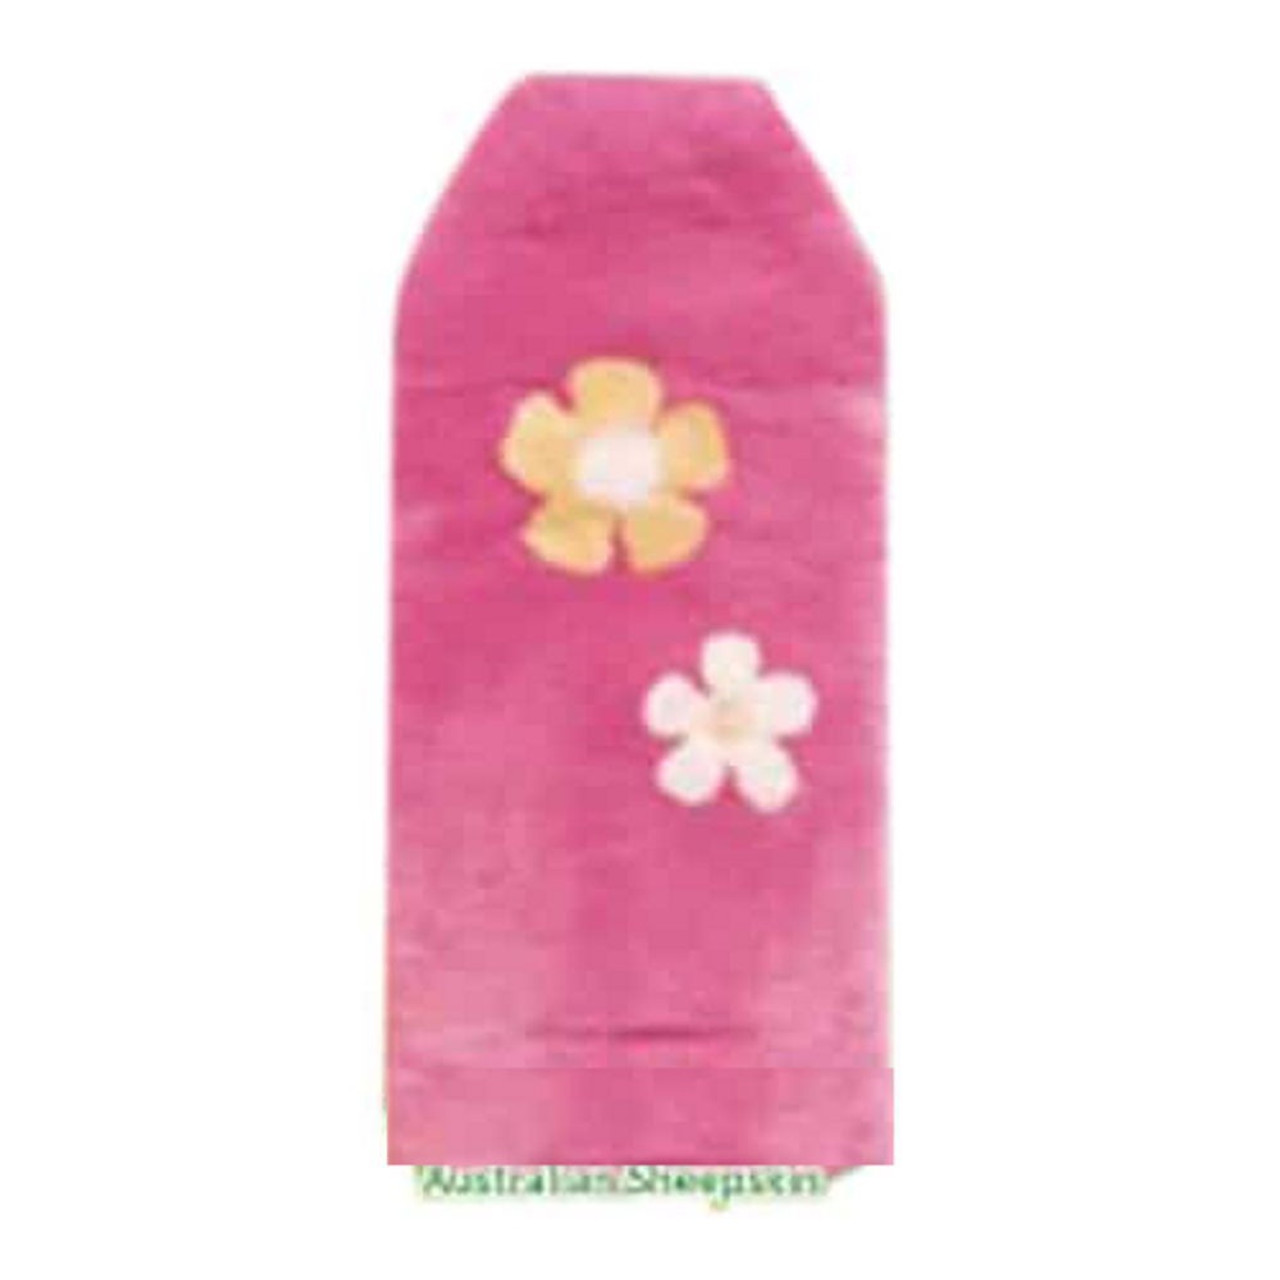 Auskin Infantcare Pram Rug at Baby Barn Discounts A luxuriously soft lamb skin pram rug to keep baby cool in summer and warm in winter.